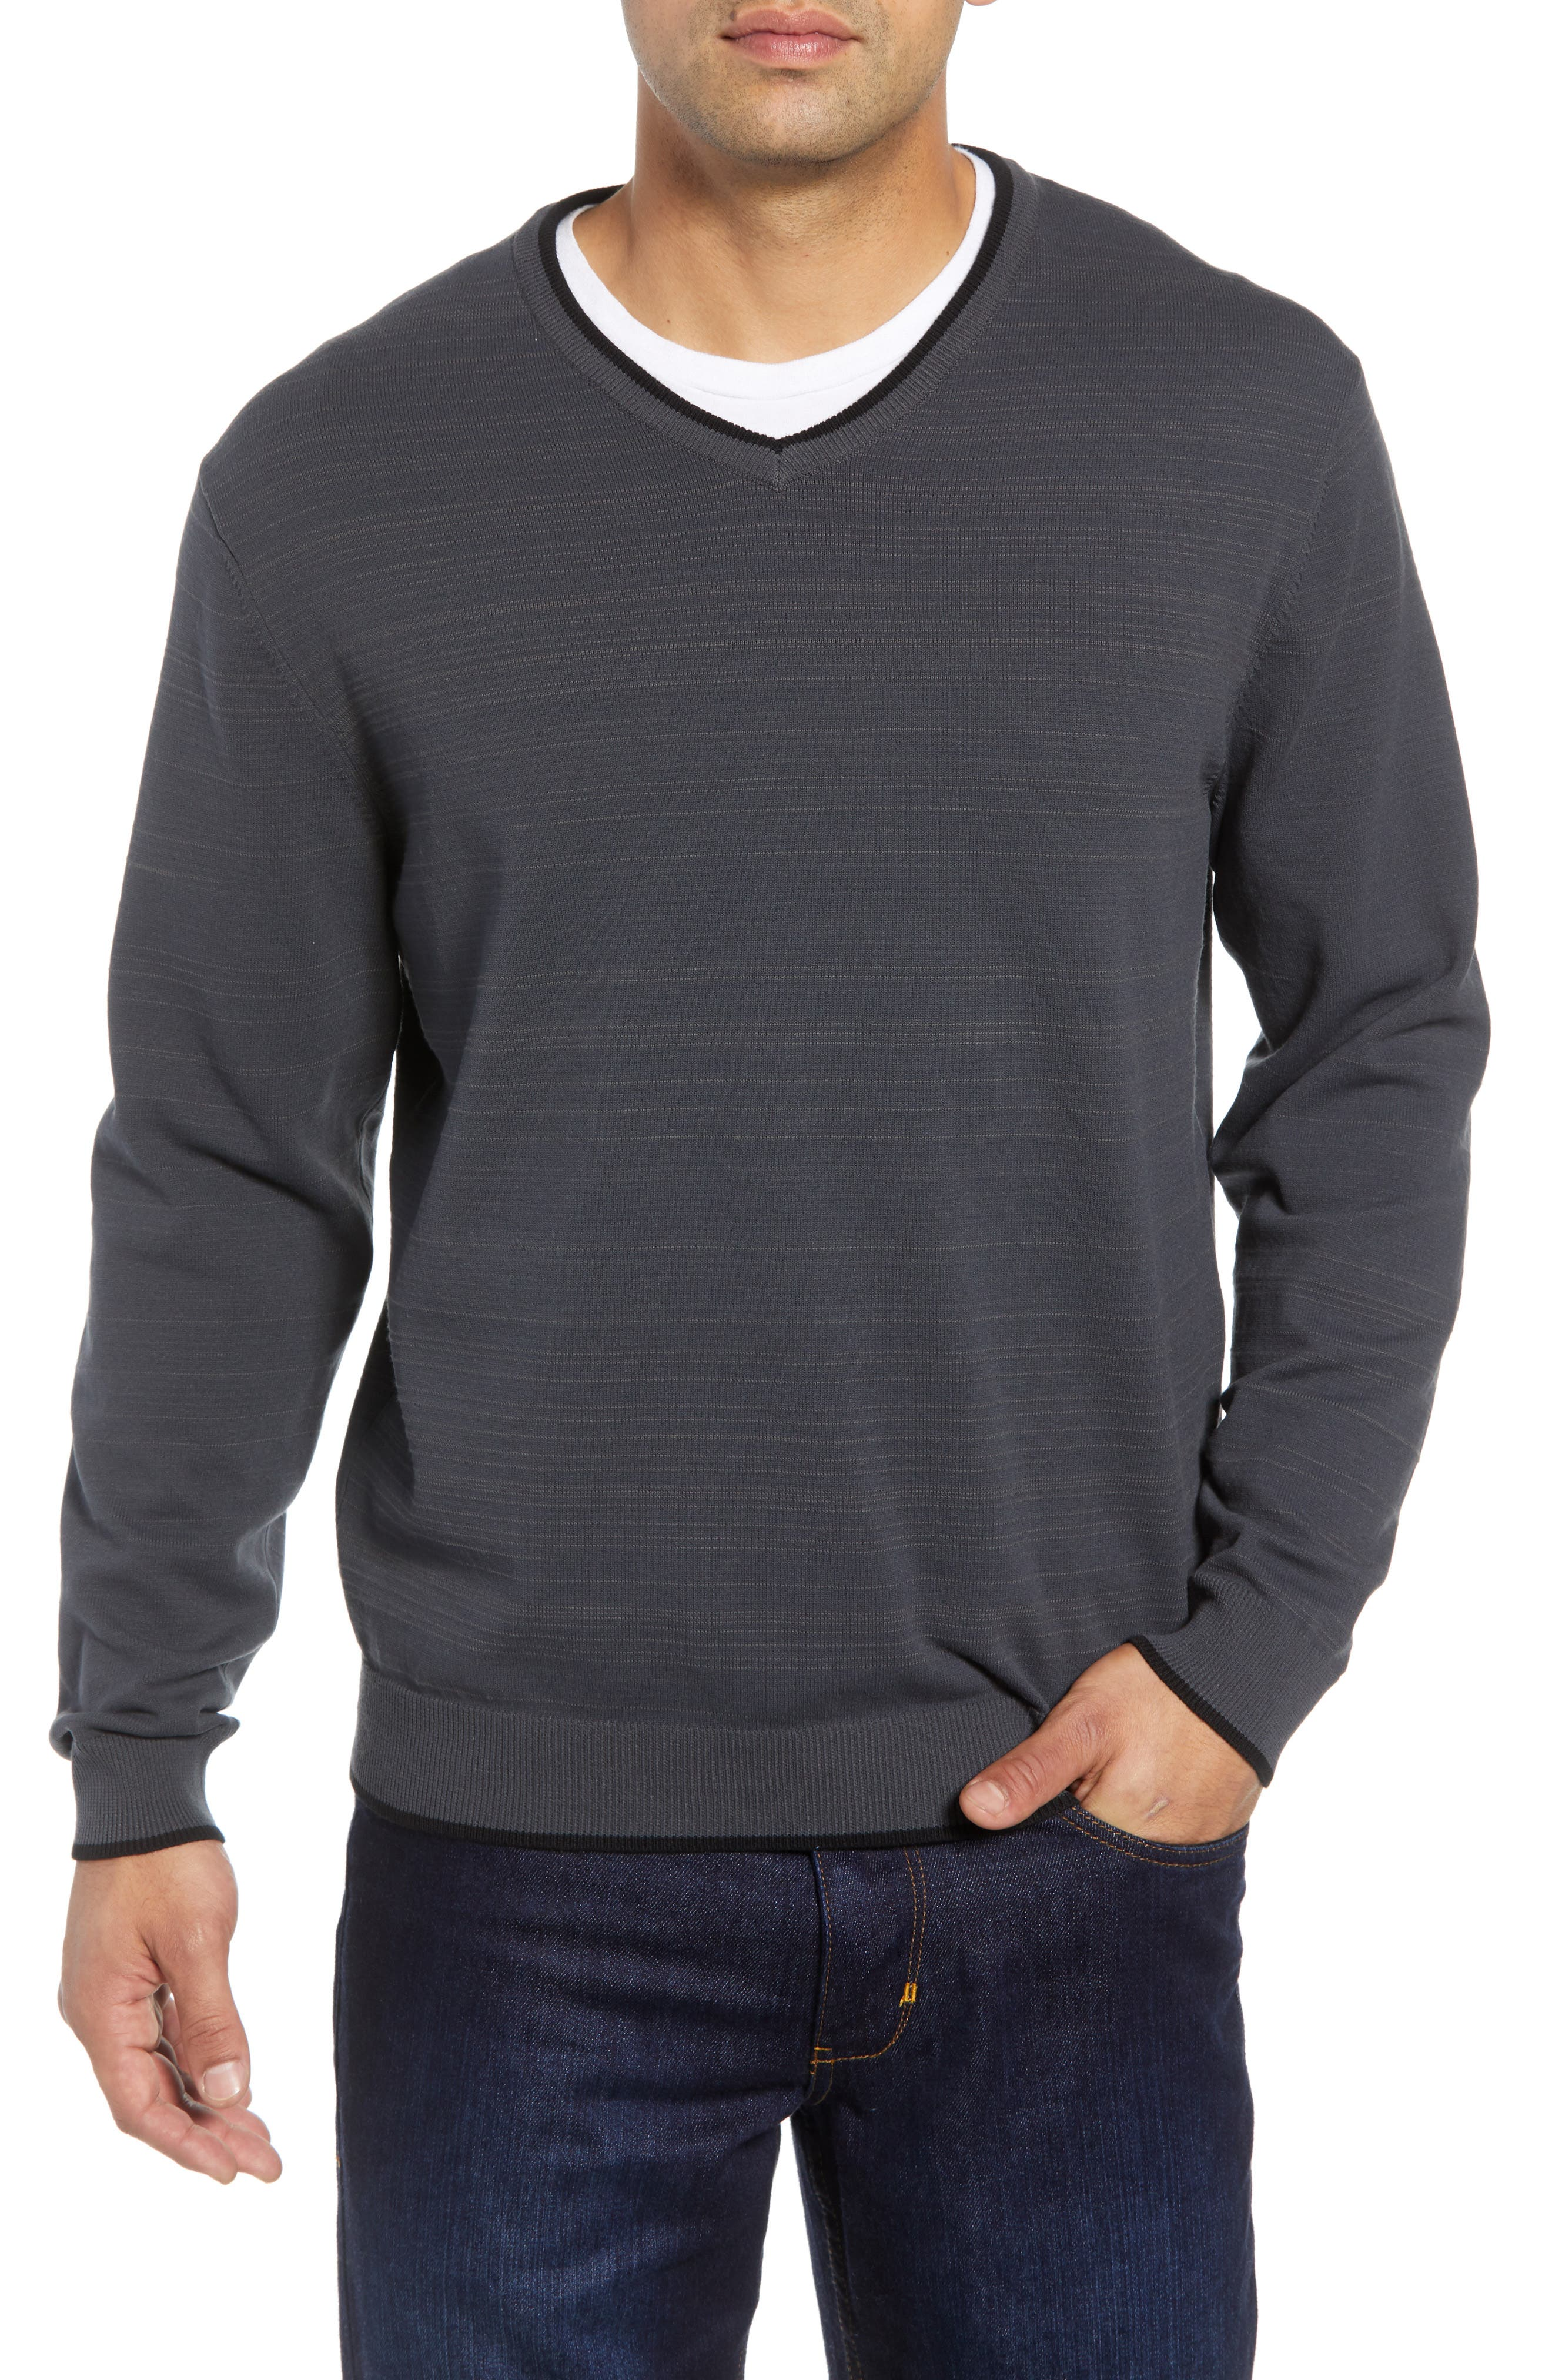 CUTTER & BUCK Impact V-Neck Sweater, Main, color, 010